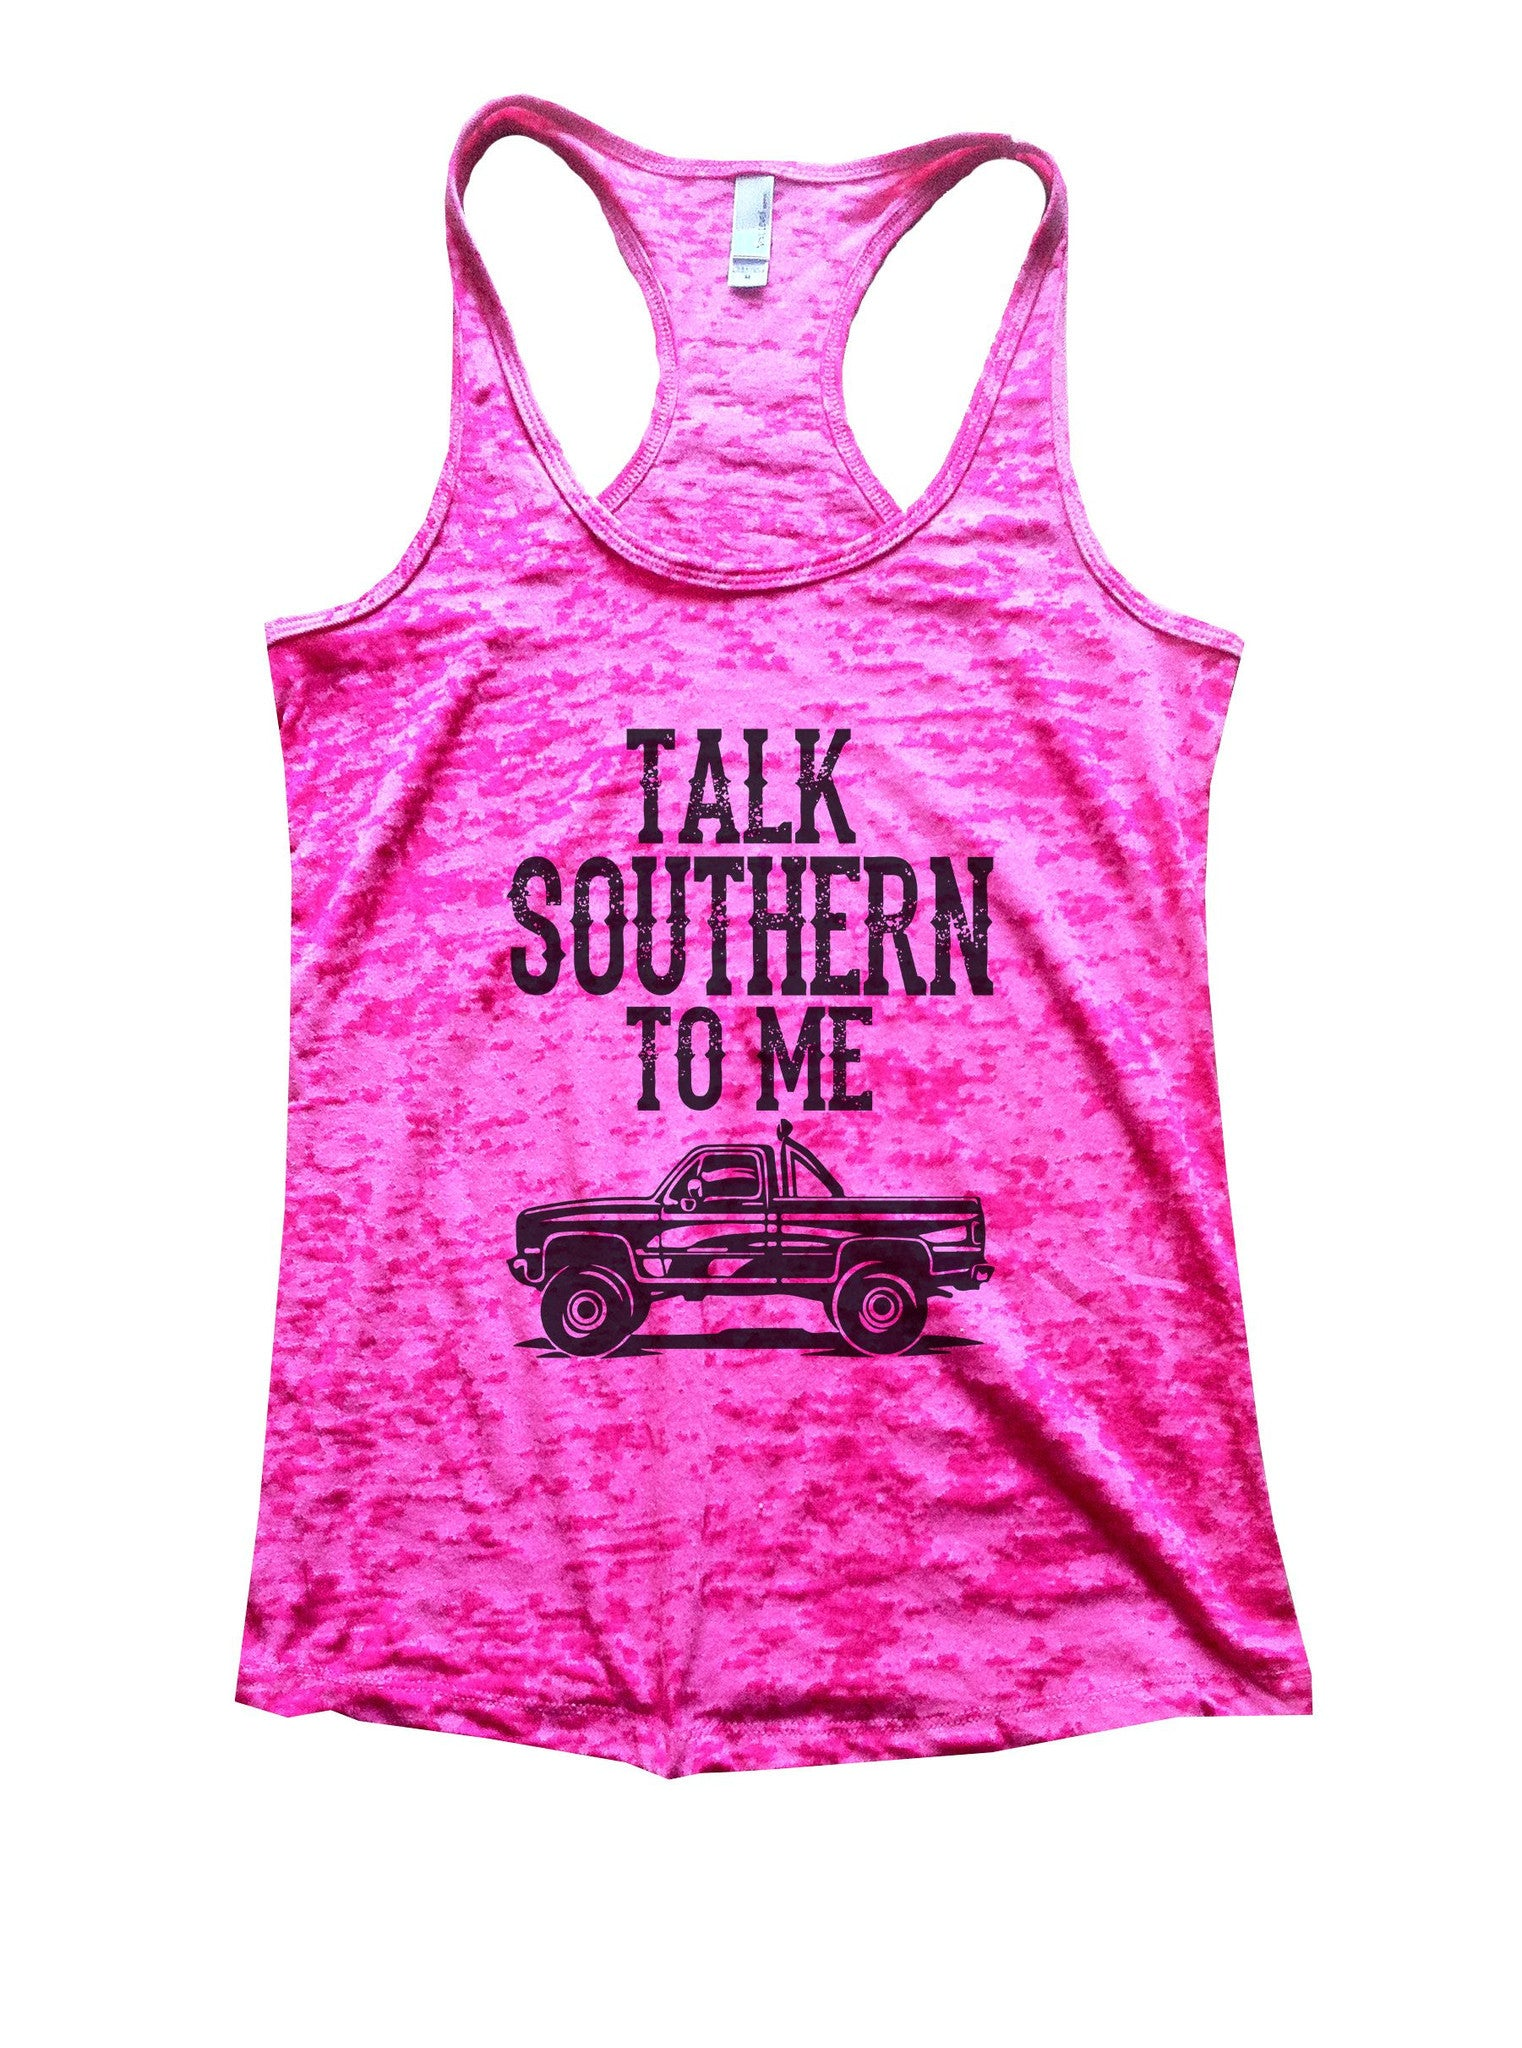 Talk Southern To Me Burnout Tank Top By BurnoutTankTops.com - 1010 - Funny Shirts Tank Tops Burnouts and Triblends  - 5